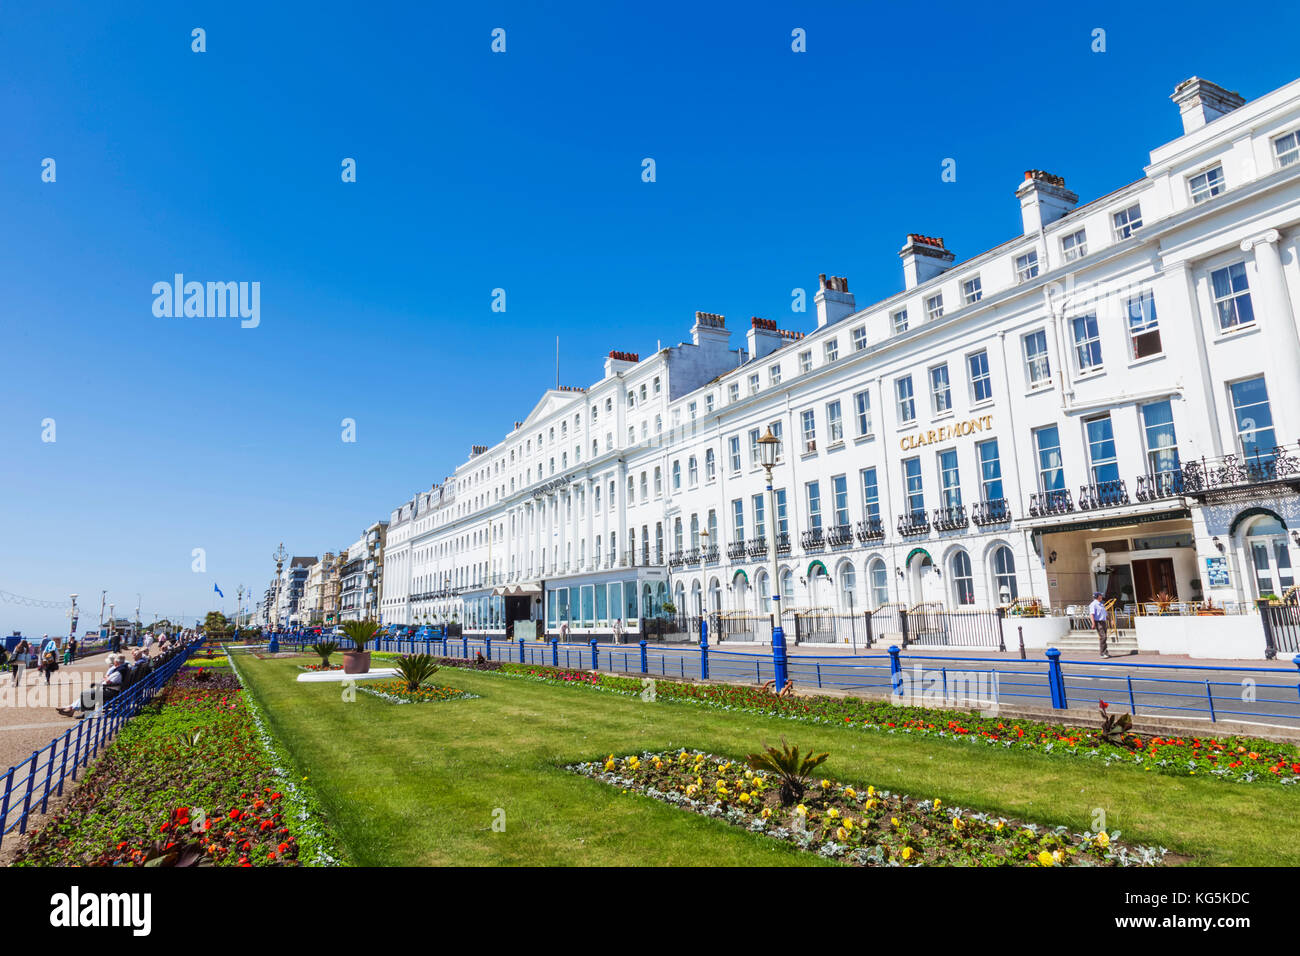 England, East Sussex, Eastbourne, Seafront Gardens and Hotels - Stock Image